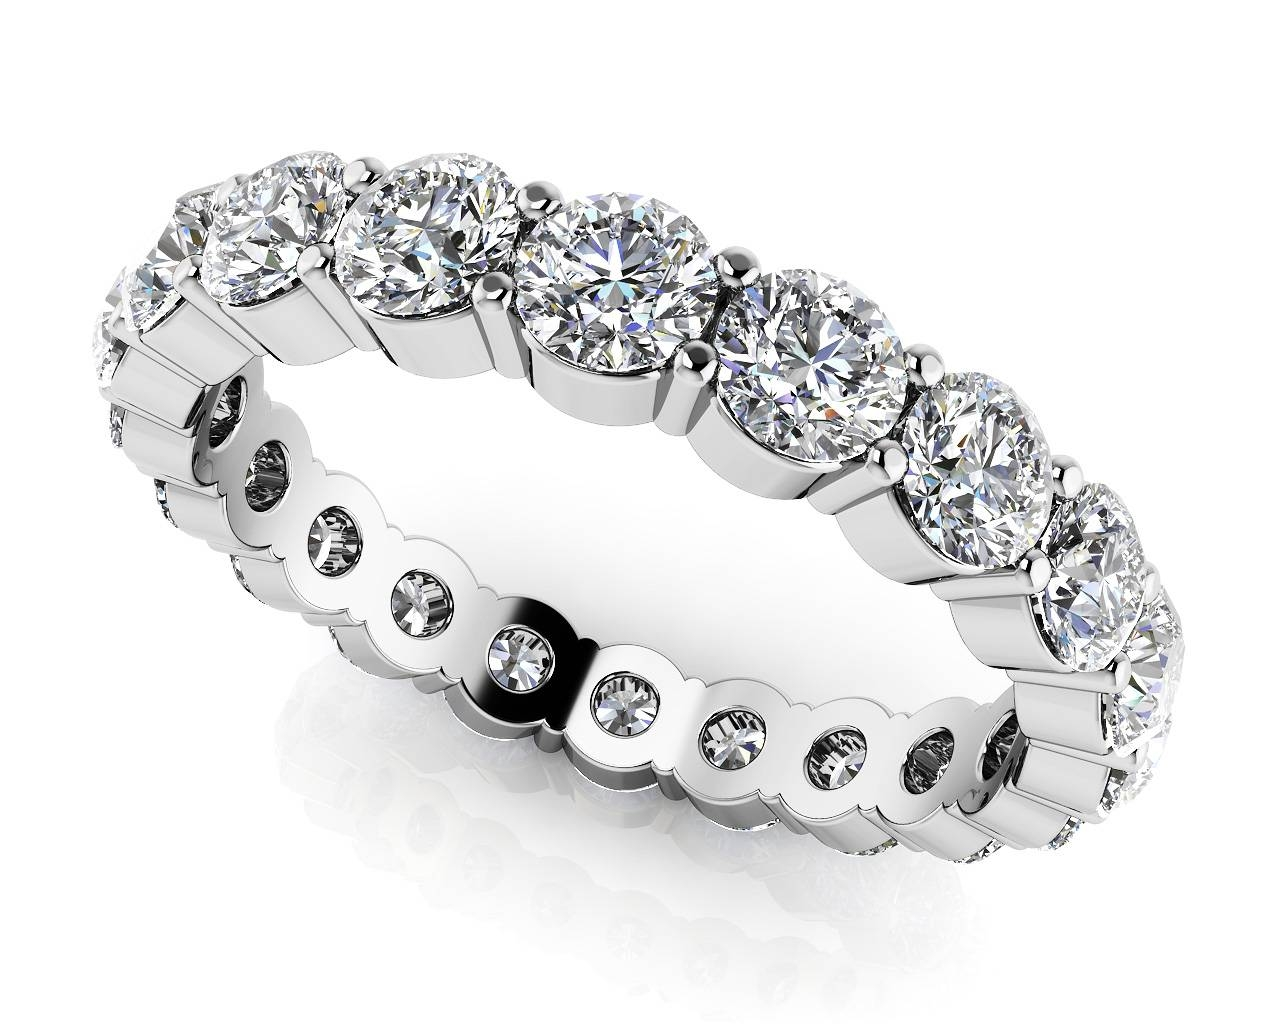 Design Your Own Diamond Anniversary Ring & Eternity Ring Pertaining To Current Diamonds Anniversary Rings (Gallery 4 of 25)